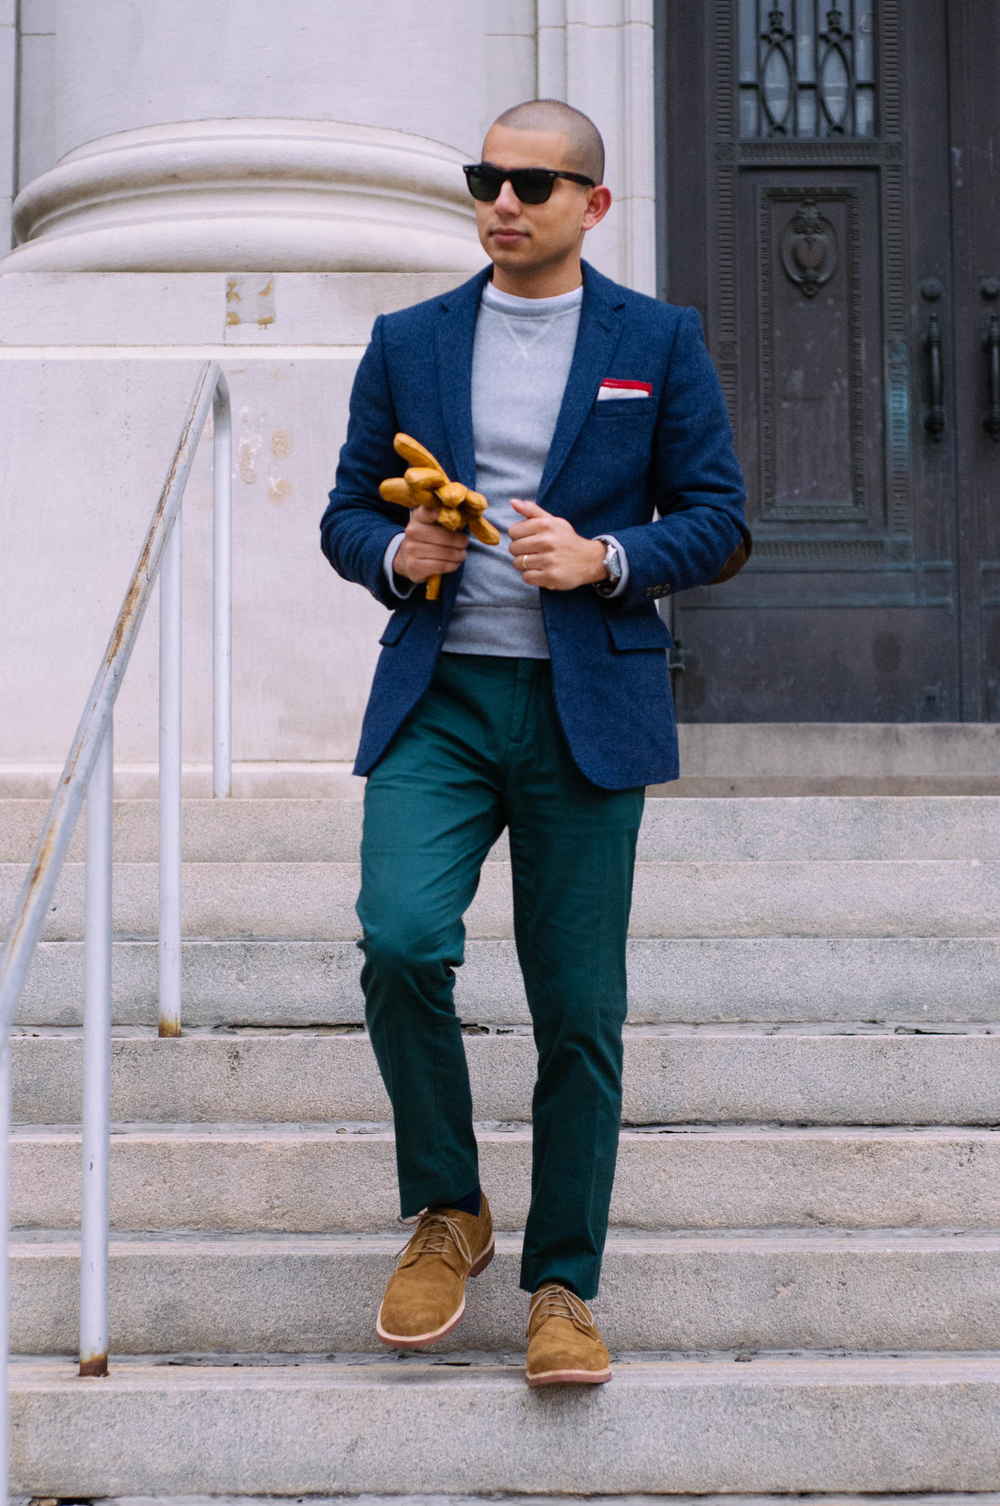 Blazer: J. Crew Factory | Pants: H&M | Sweatshirt: J.Crew | Shoes: Sperry Gold Cup | Gloves: Jack Spade | Pocket Square: The Tie Bar | Watch: Aeromatic 1912 | Sunglasses: RayBan